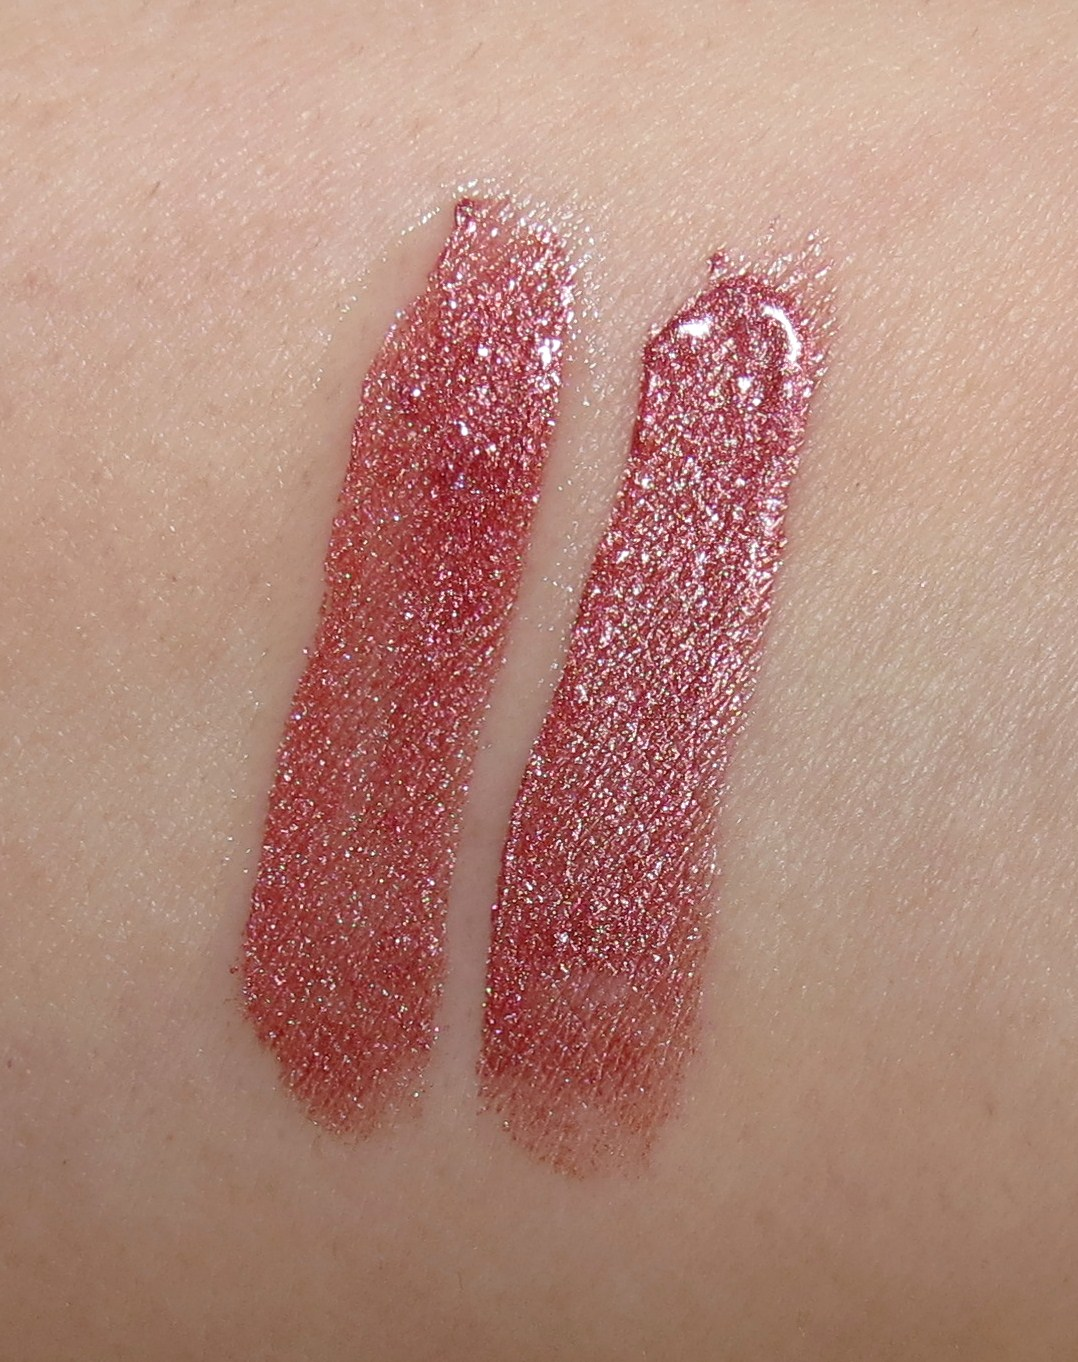 Le Rouge Duo Ultra Tenue Ultra Wear Liquid Lip Colour by Chanel #11